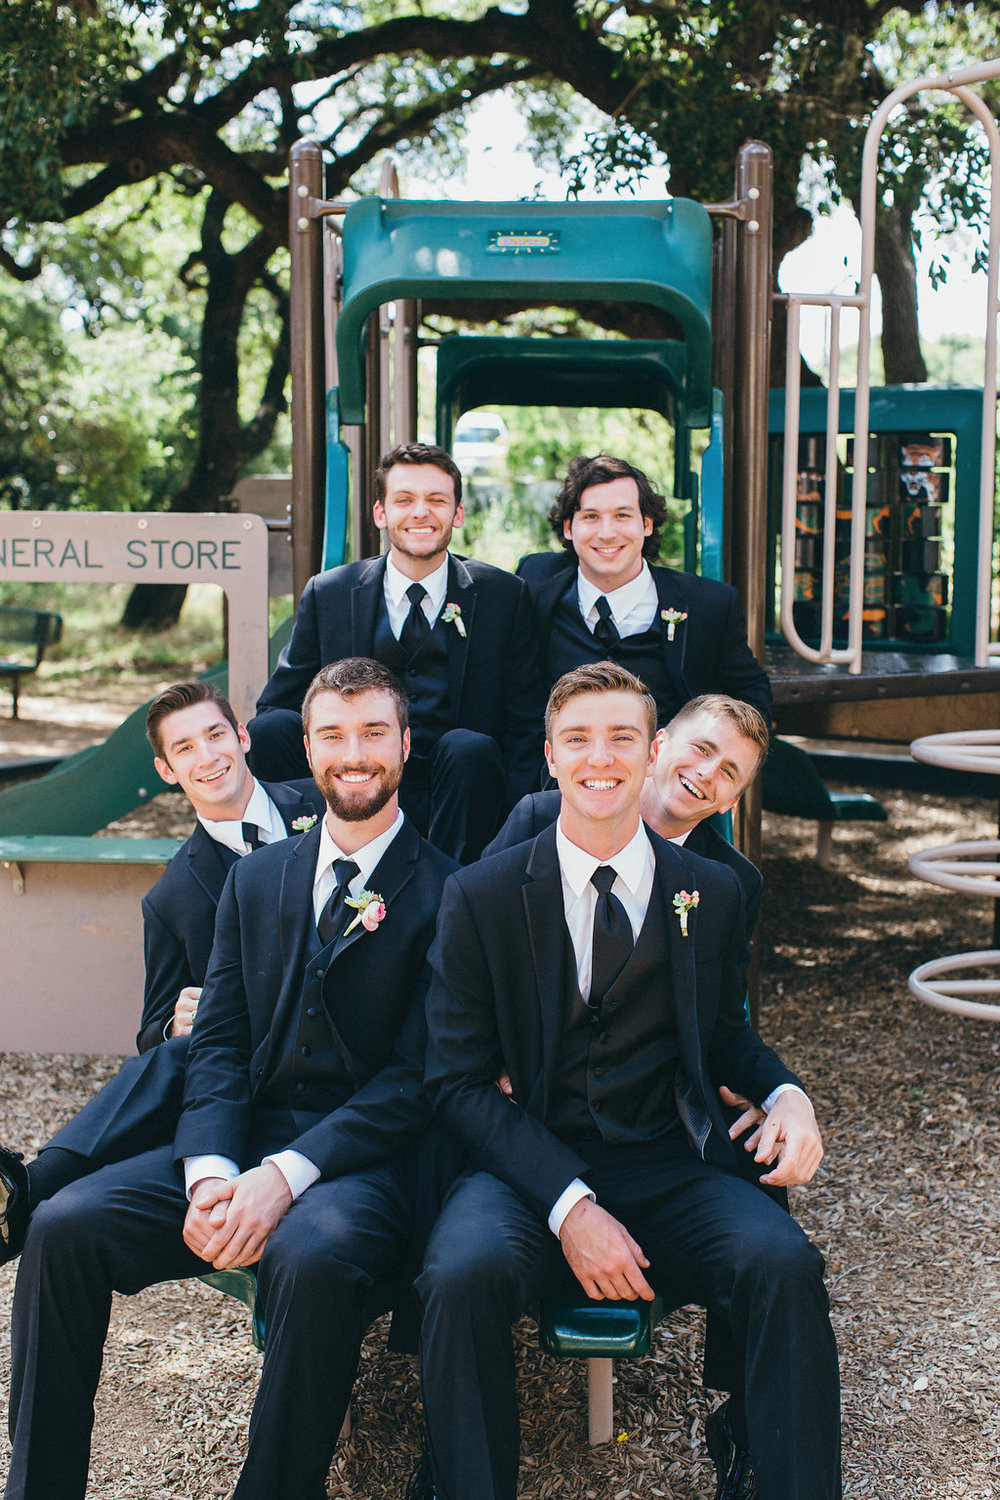 Groom & groomsmen on playground slide - www.grantdanielsphotography.com